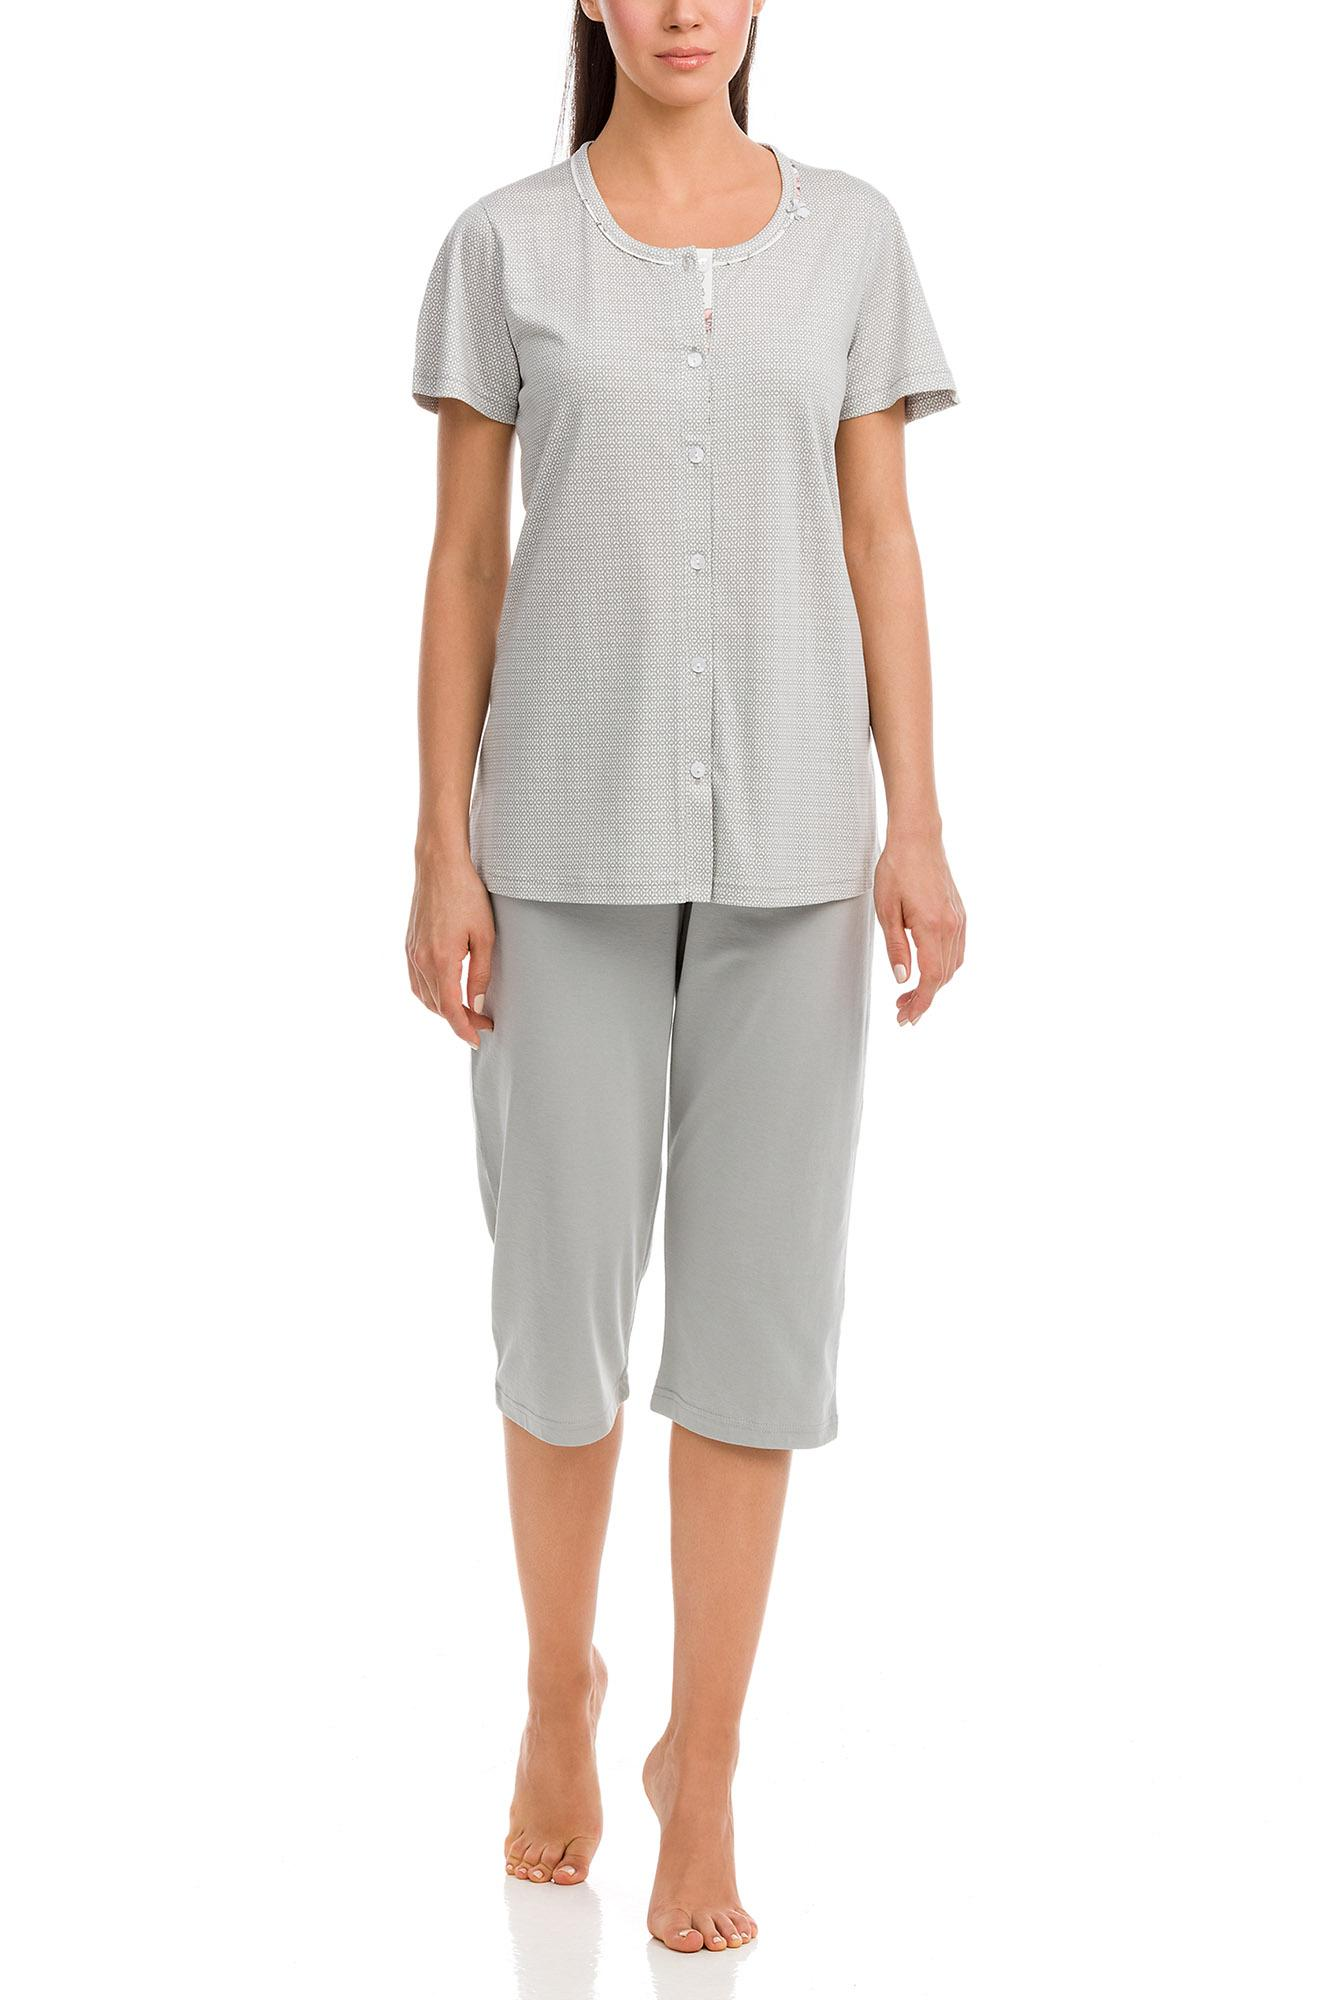 Women's Pyjamas Plus Size